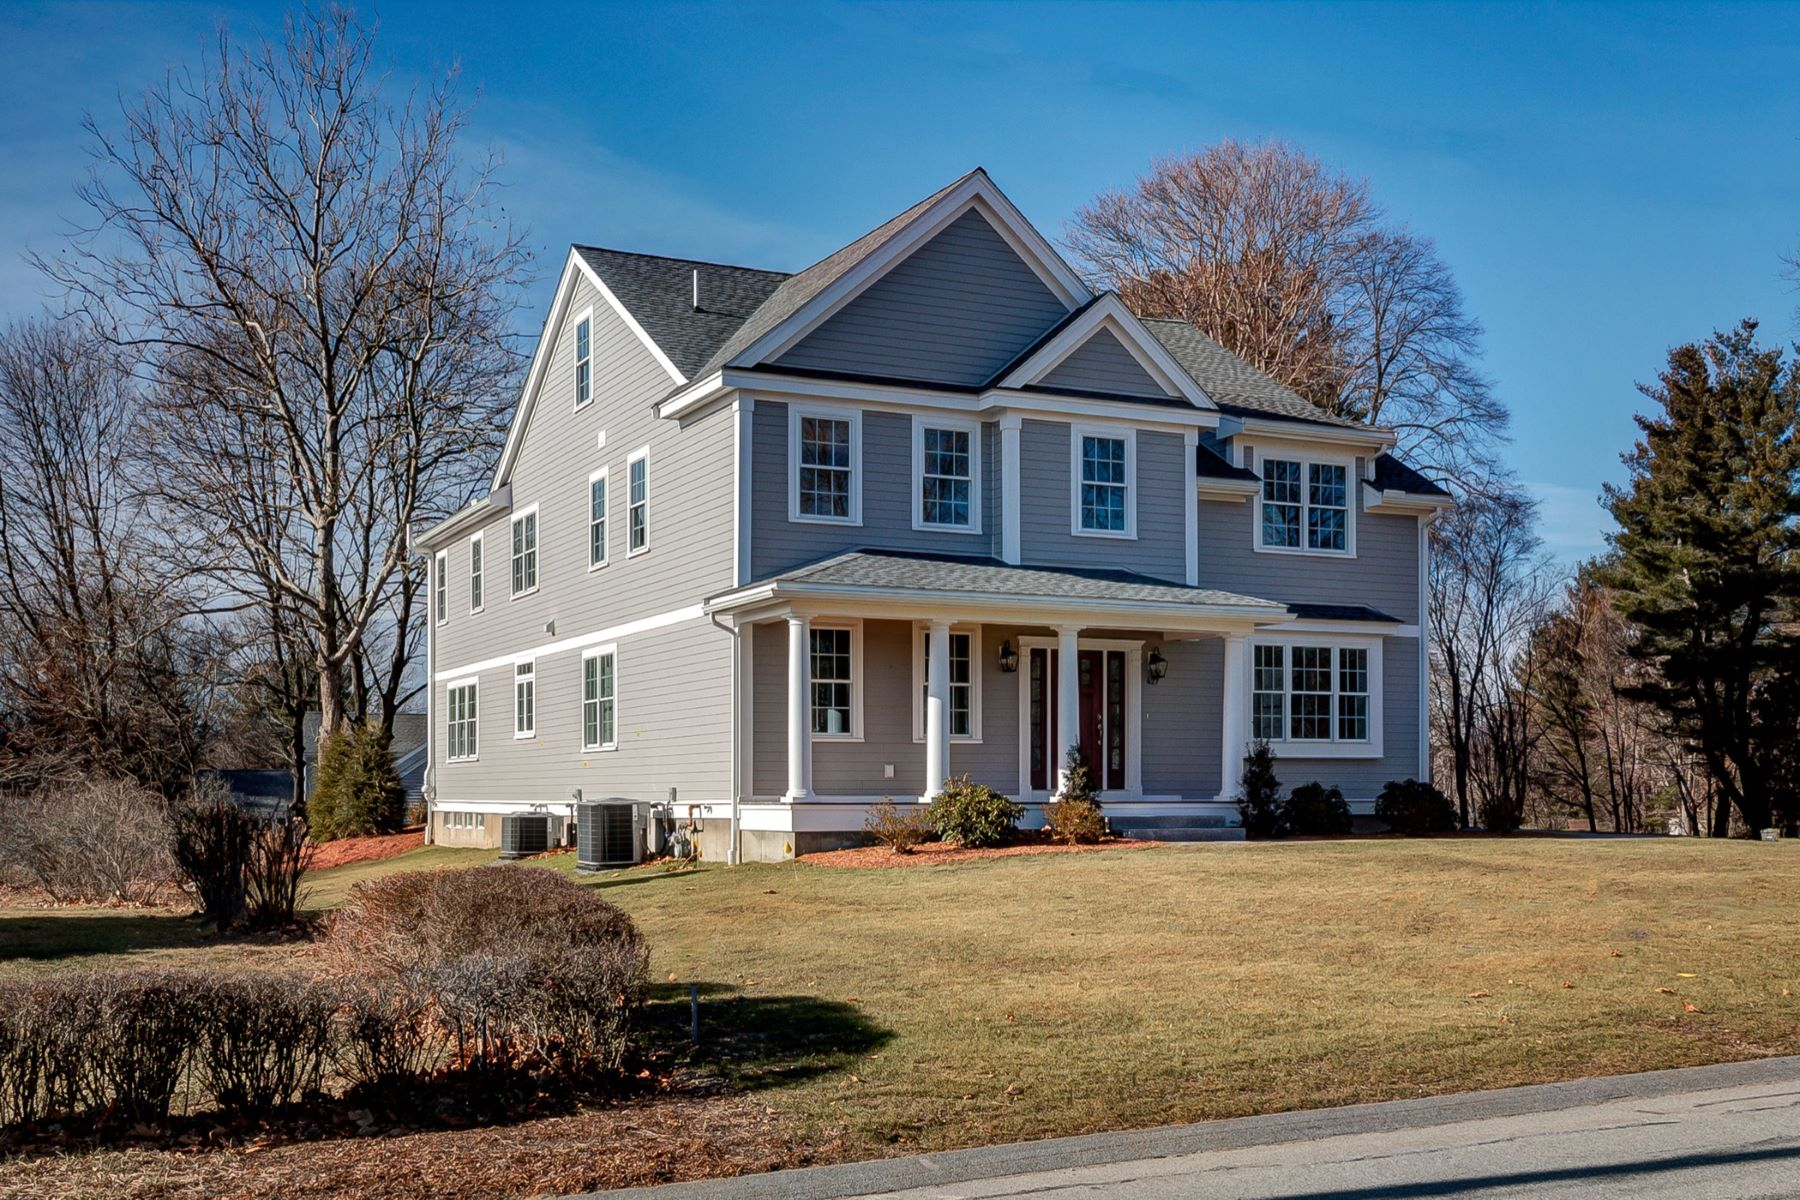 Casa Unifamiliar por un Venta en New Construction 427 Davis Road Bedford, Massachusetts, 01730 Estados Unidos